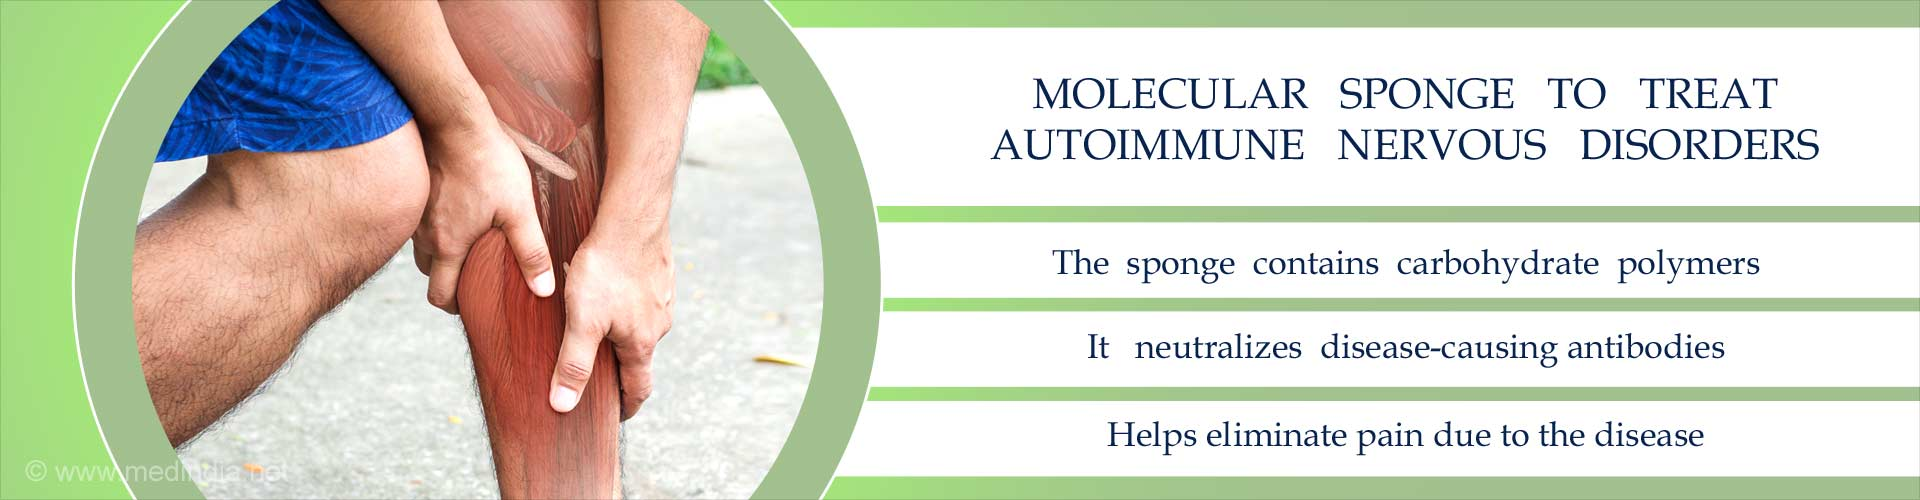 molecular sponge to treat autoimmune nervous disorders